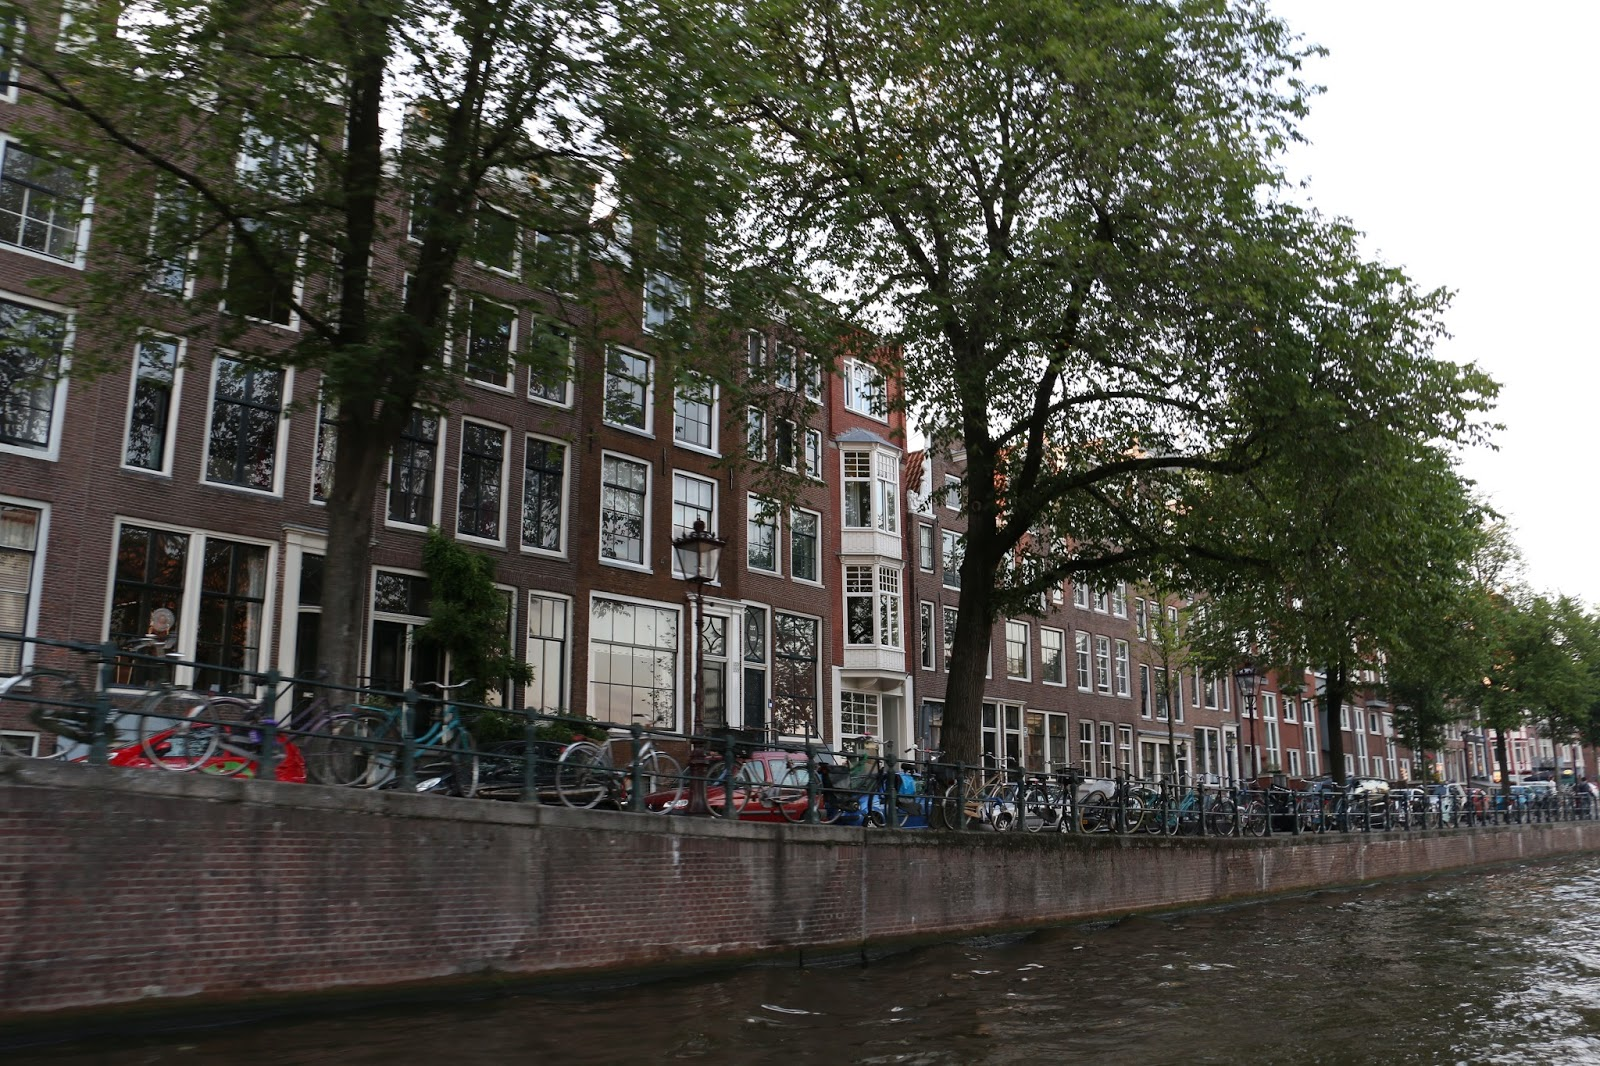 amsterdam, travel, amsterdam travel guide, travel guide